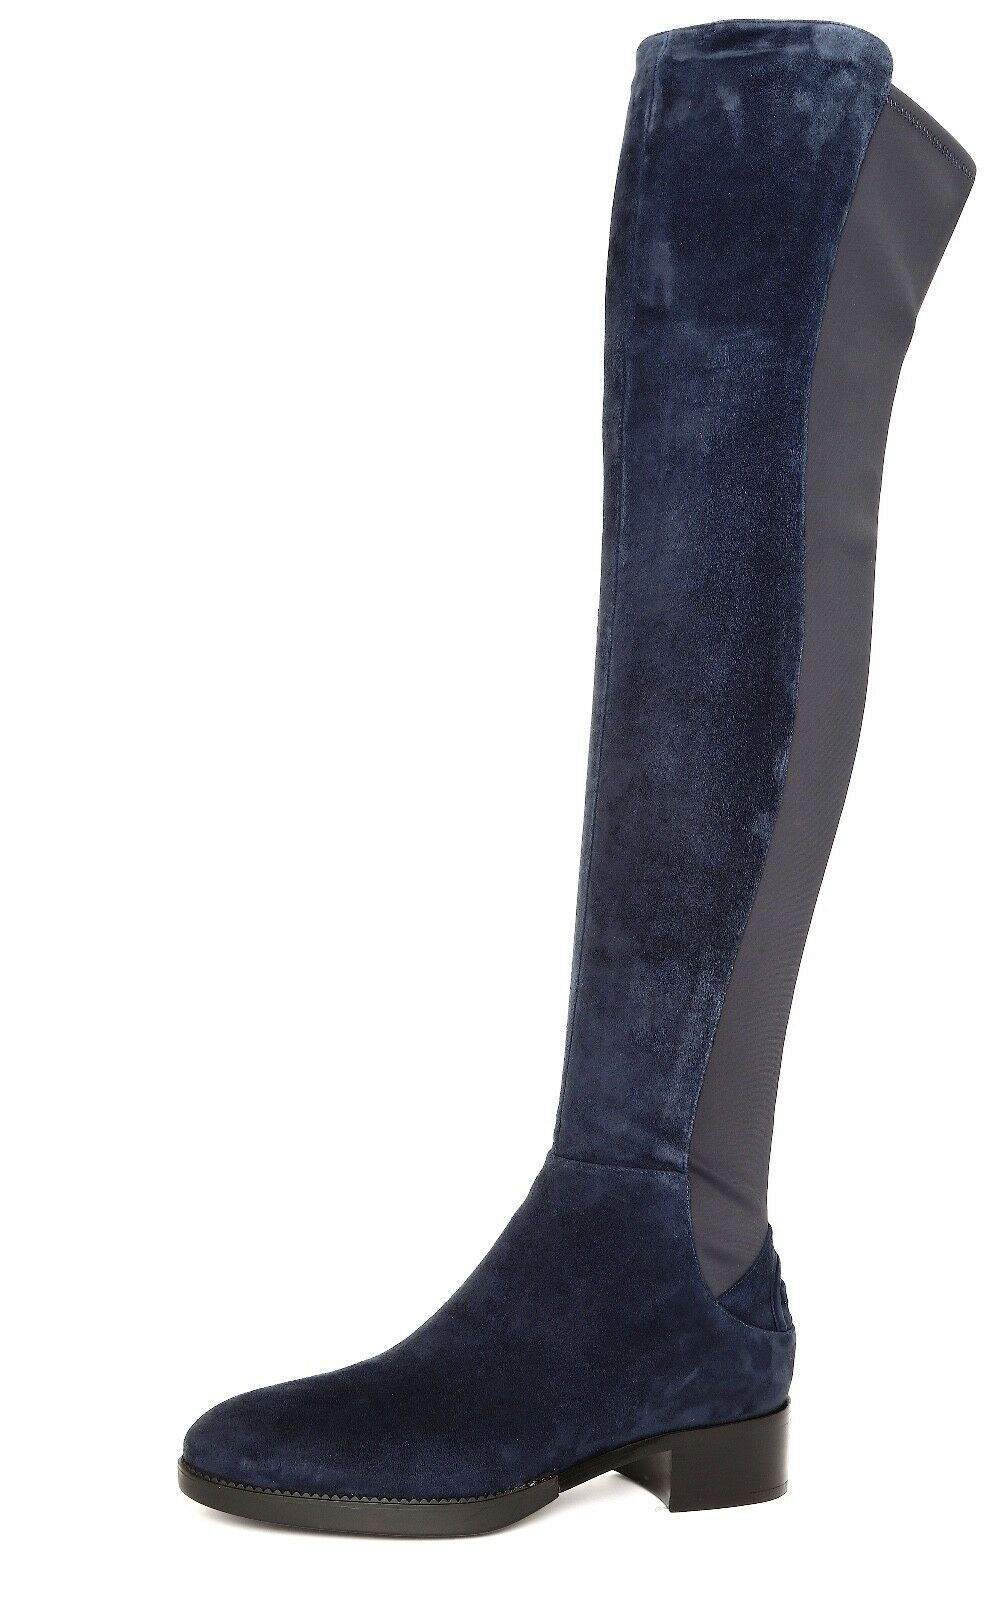 Tory Burch Caitlin Women's Bright Navy Over Knee Boot Sz 8M 2005